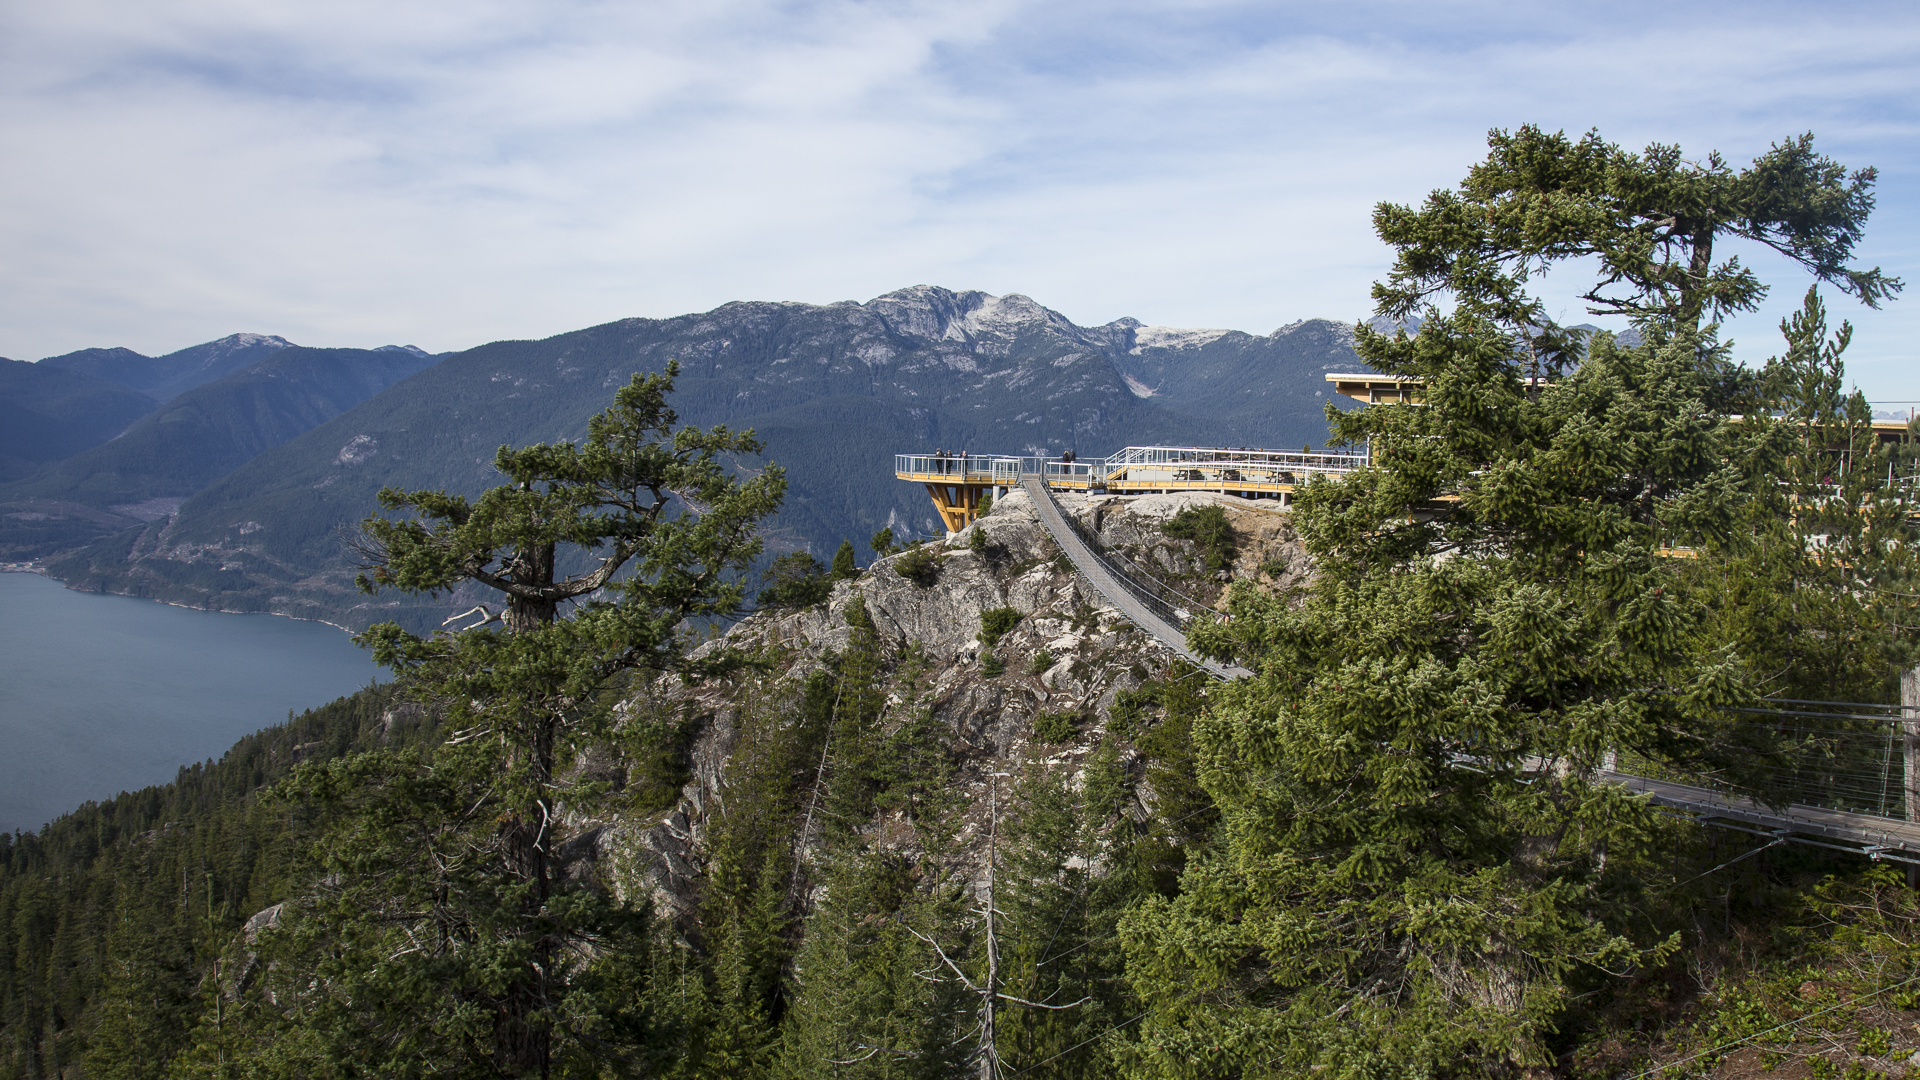 The chalet and the suspension bridge.